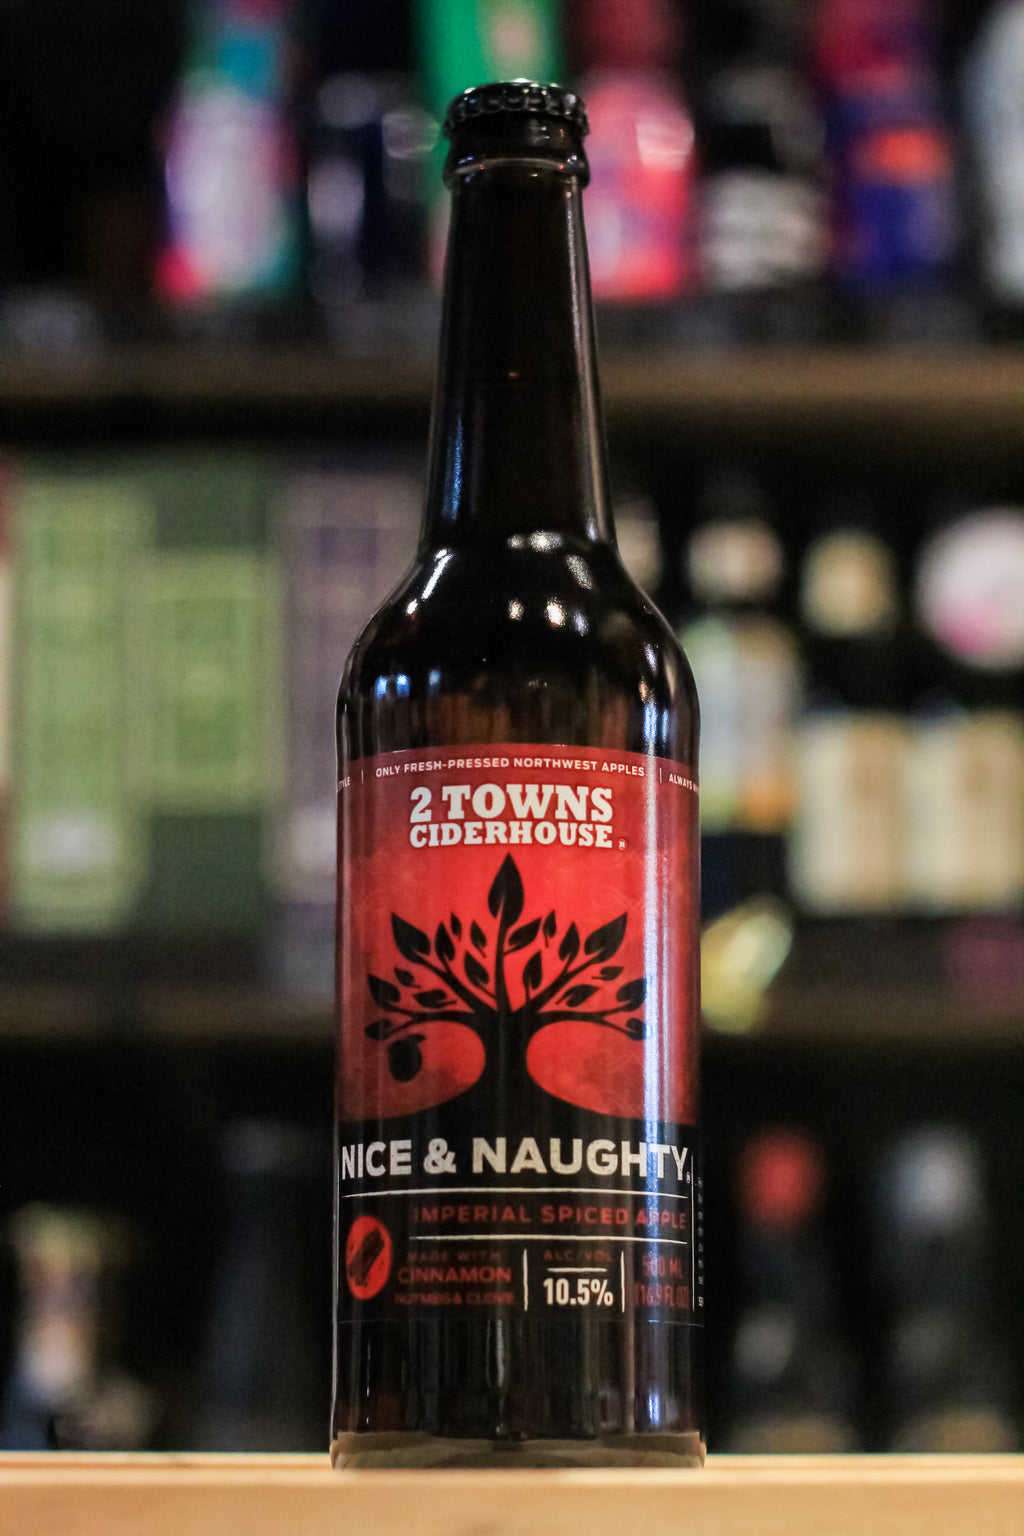 2 Towns Ciderhouse Nice & Naughty